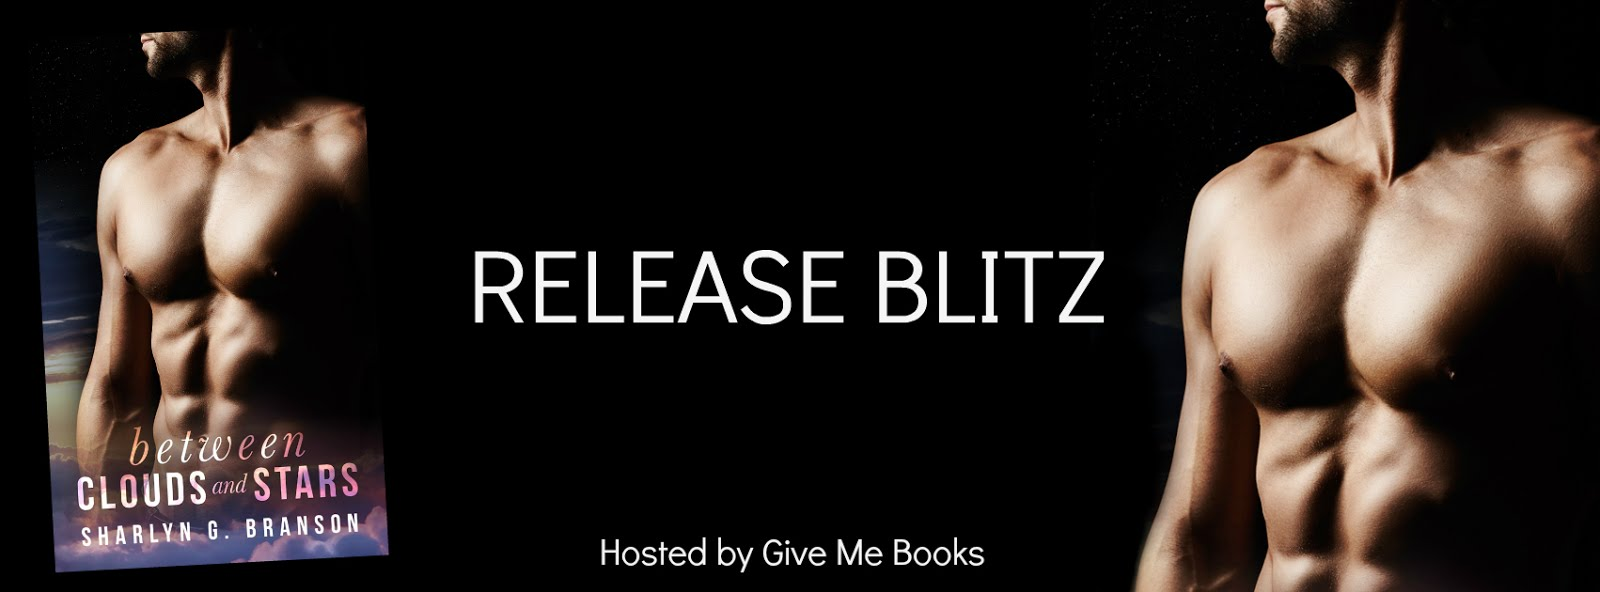 Between Clouds and Stars Release Blitz